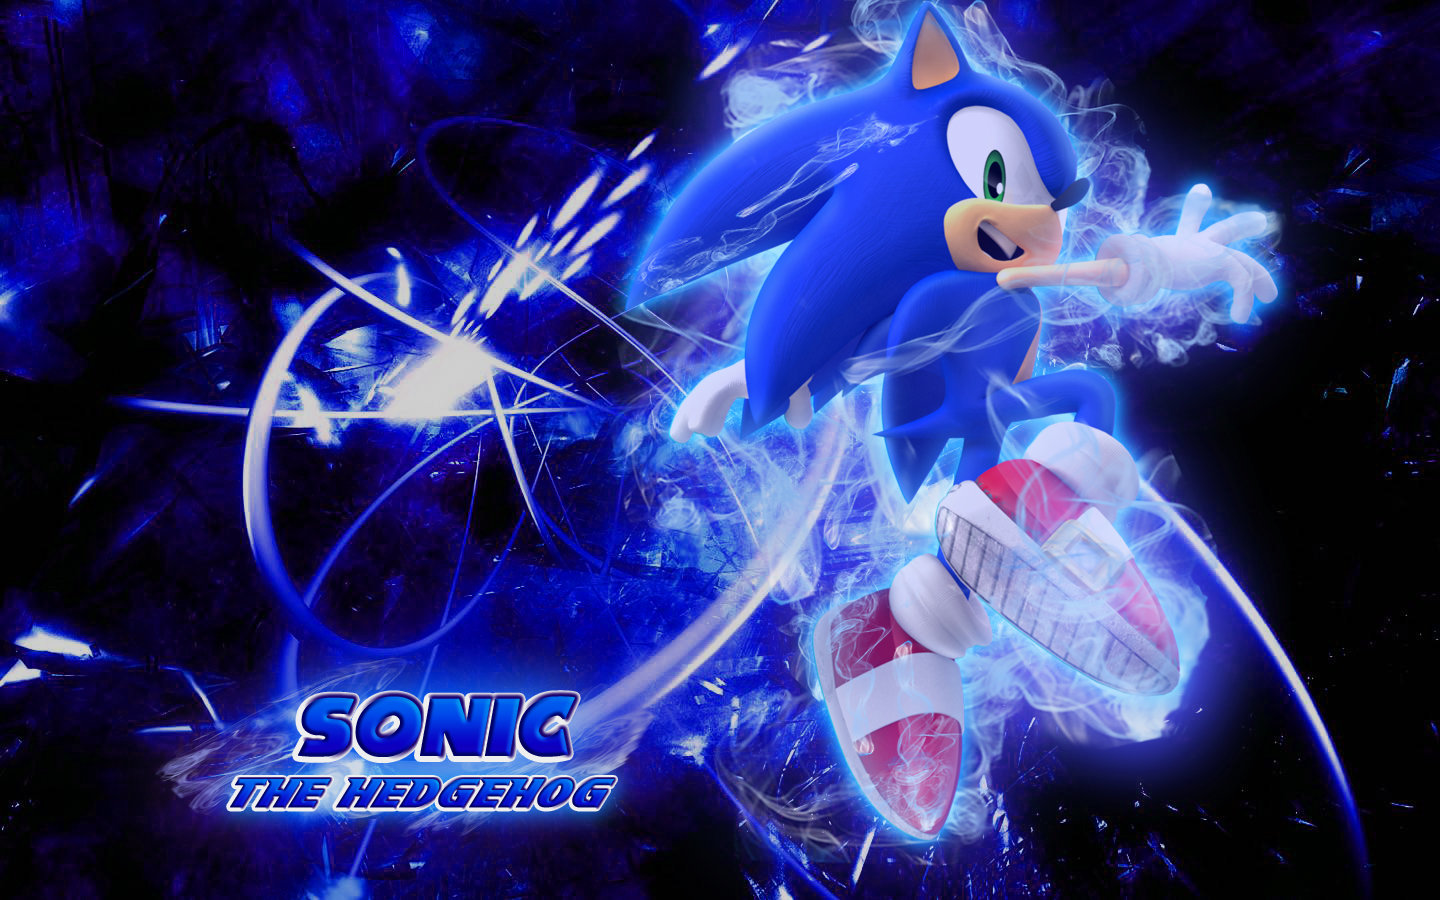 Best Sonic The Hedgehog Wallpaper Id 52057 For High Resolution Hd 1440x900 Computer